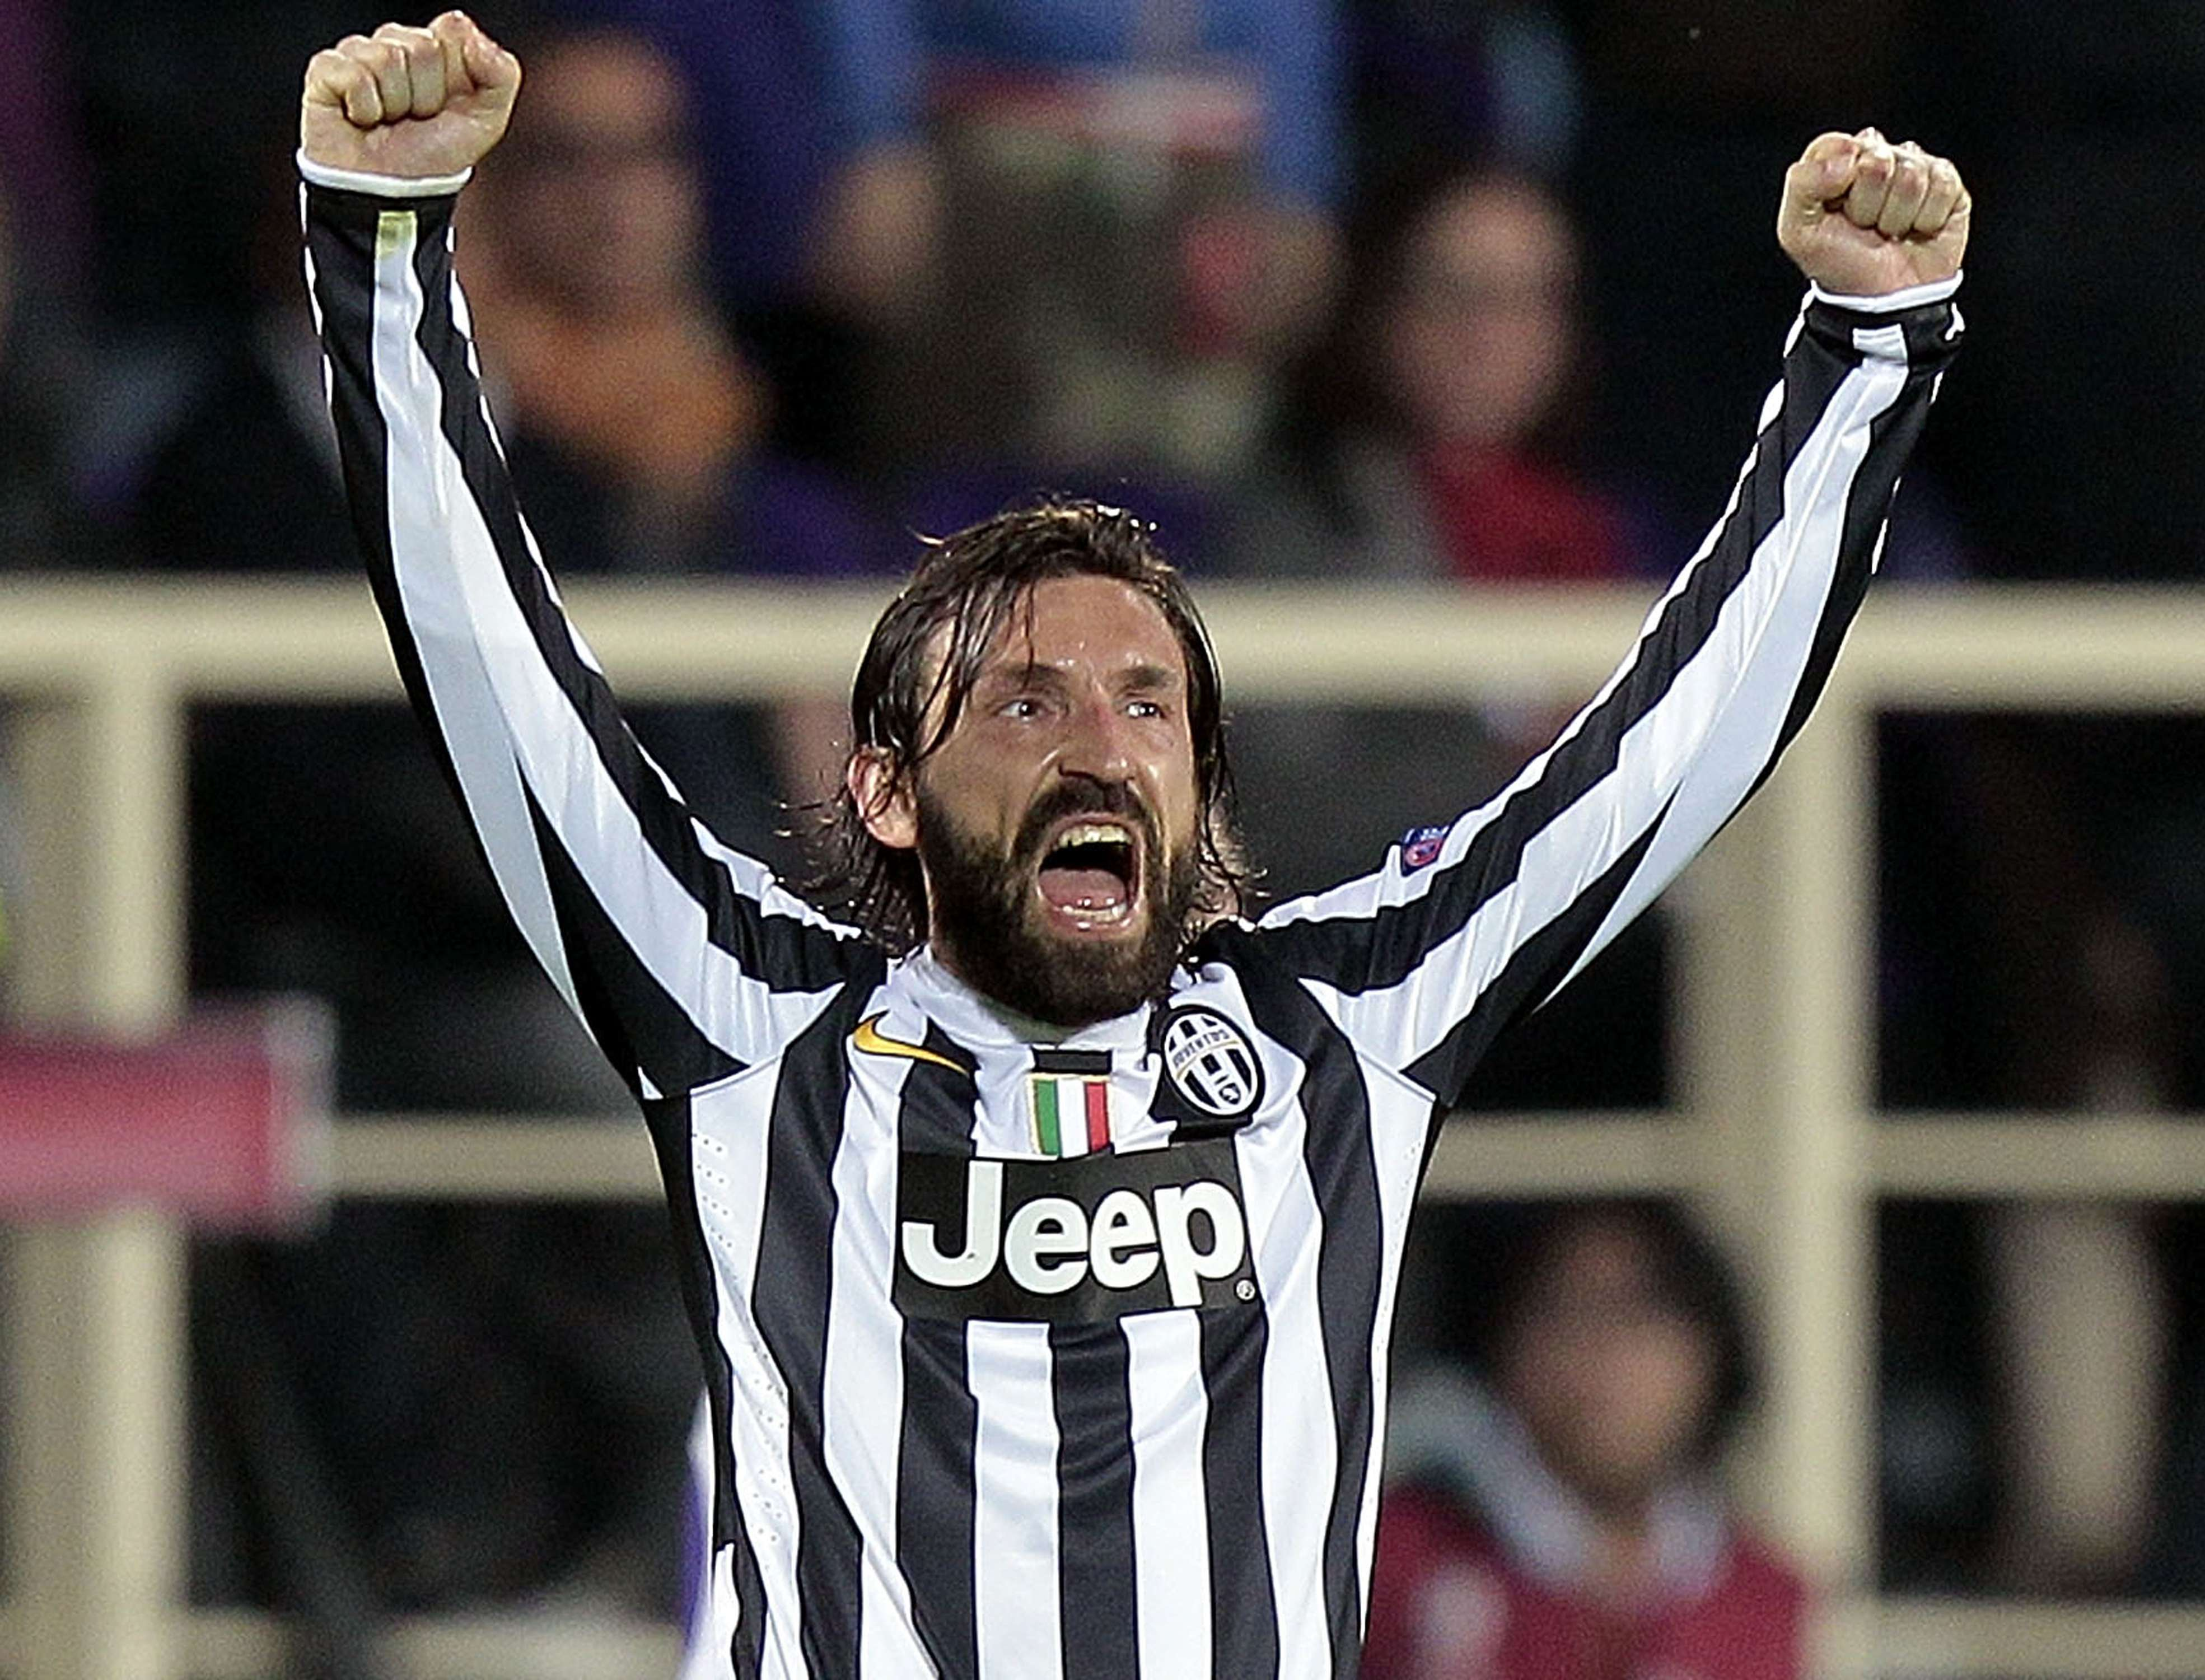 The 10 best beards in soccer